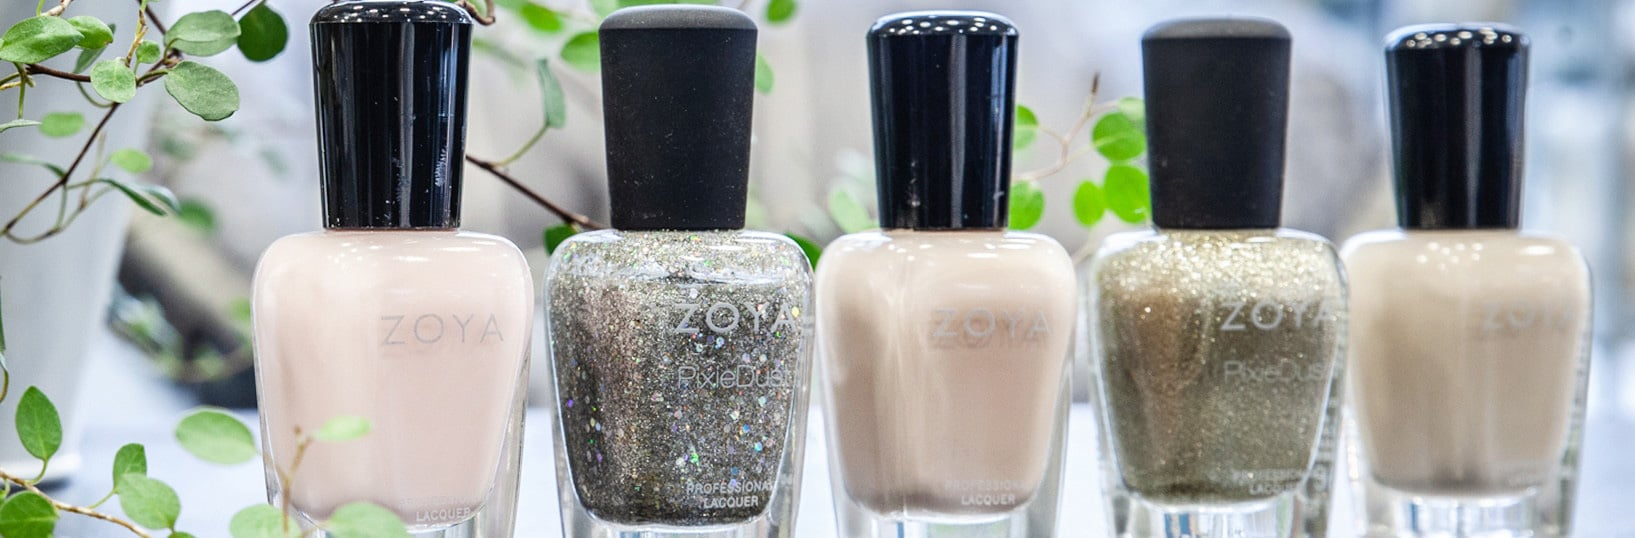 Nail polish for manicures and pedicures